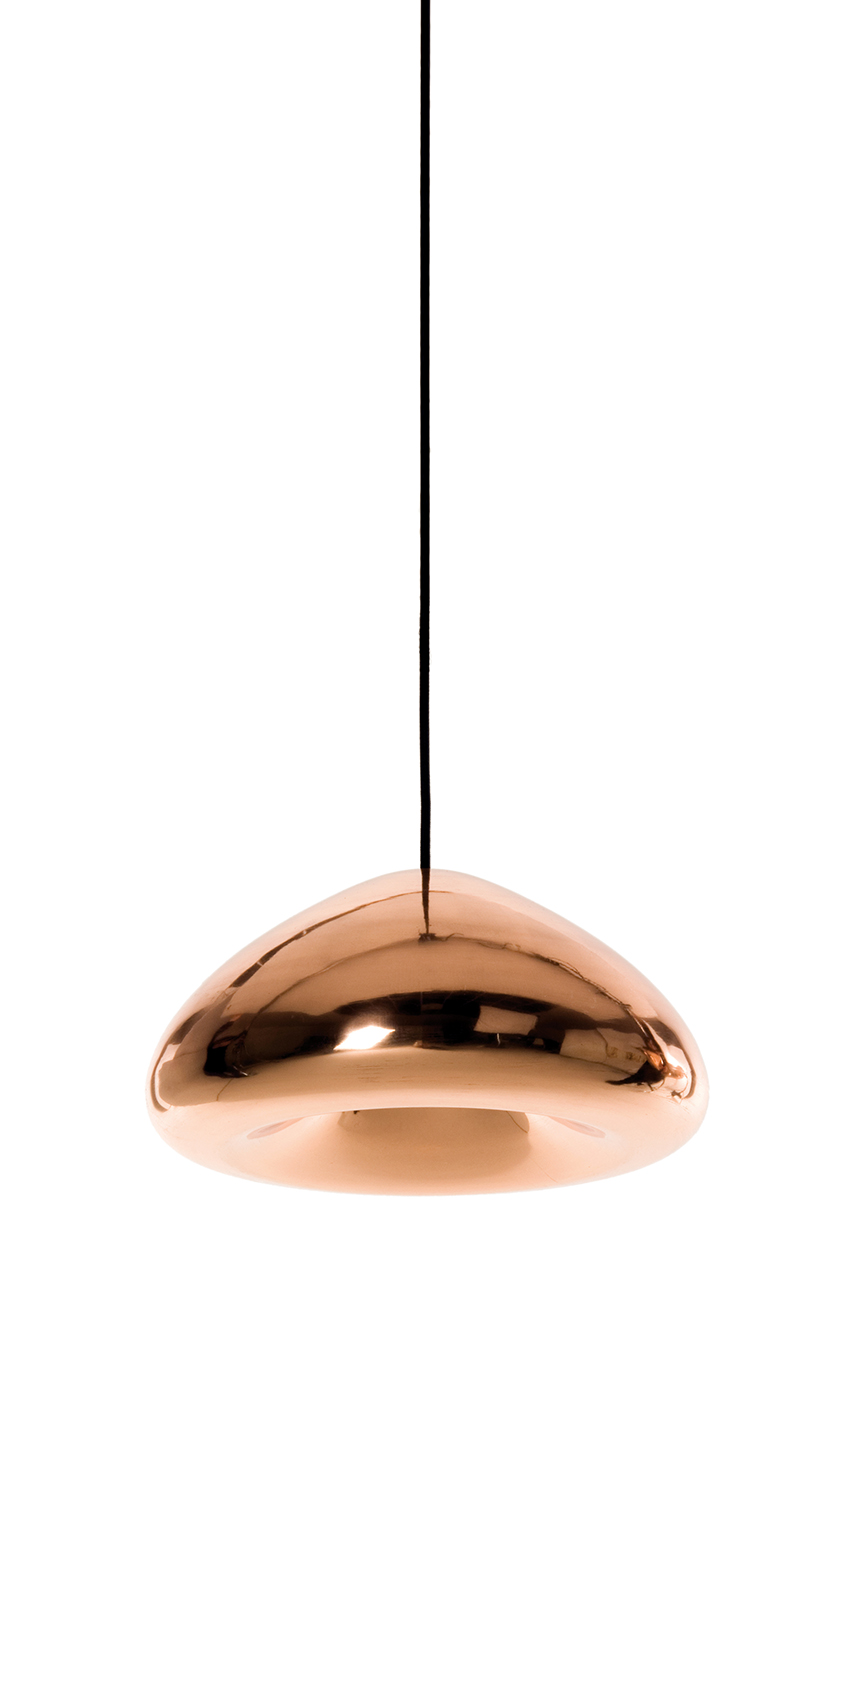 Void light by Tom Dixon